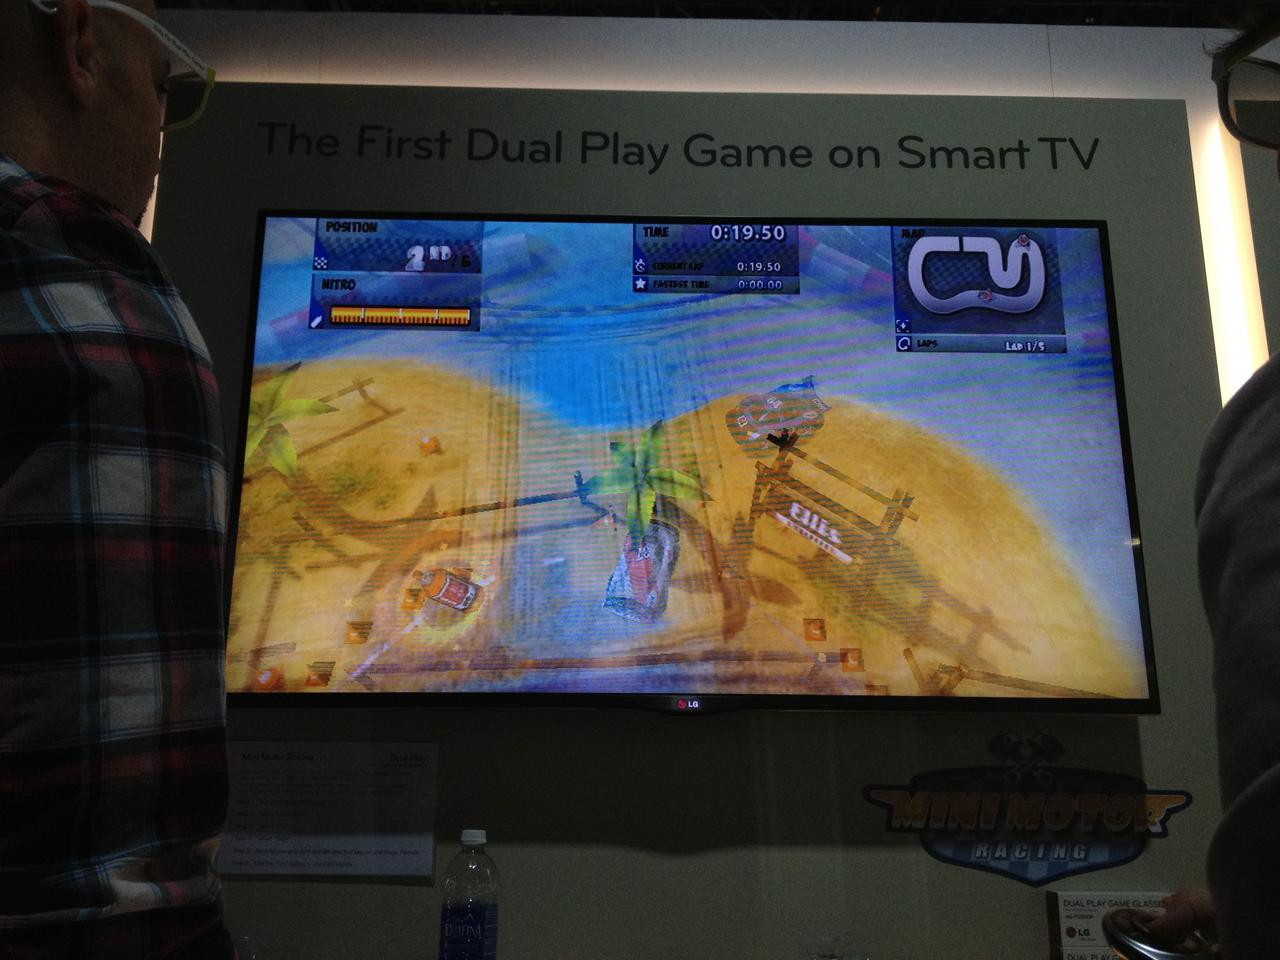 The view of LG's dual play game without glasses